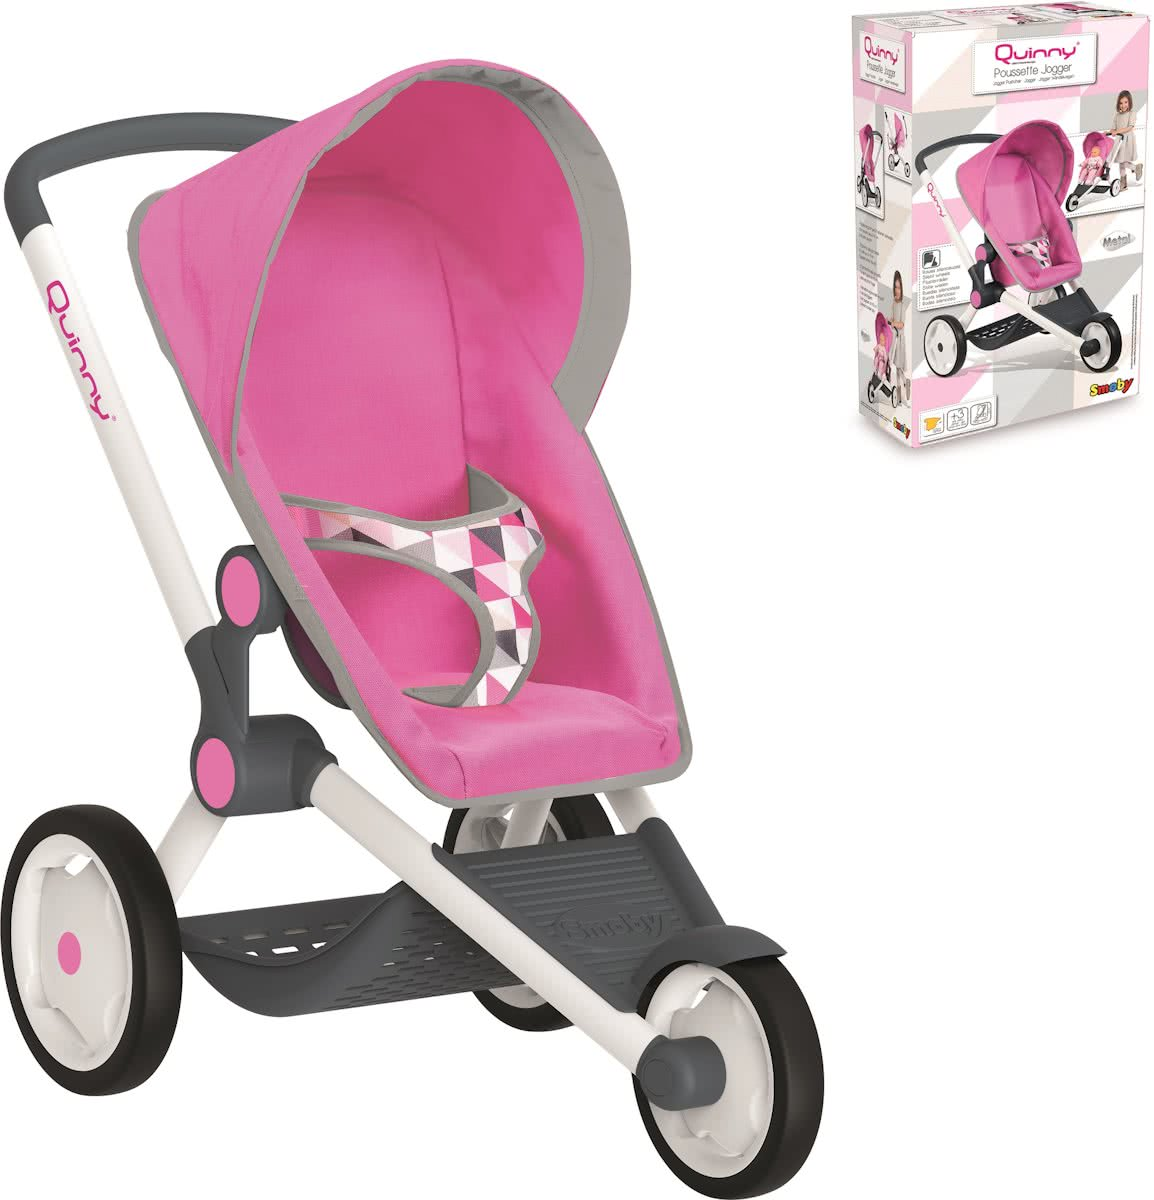 Smoby Quinny Jogger buggy